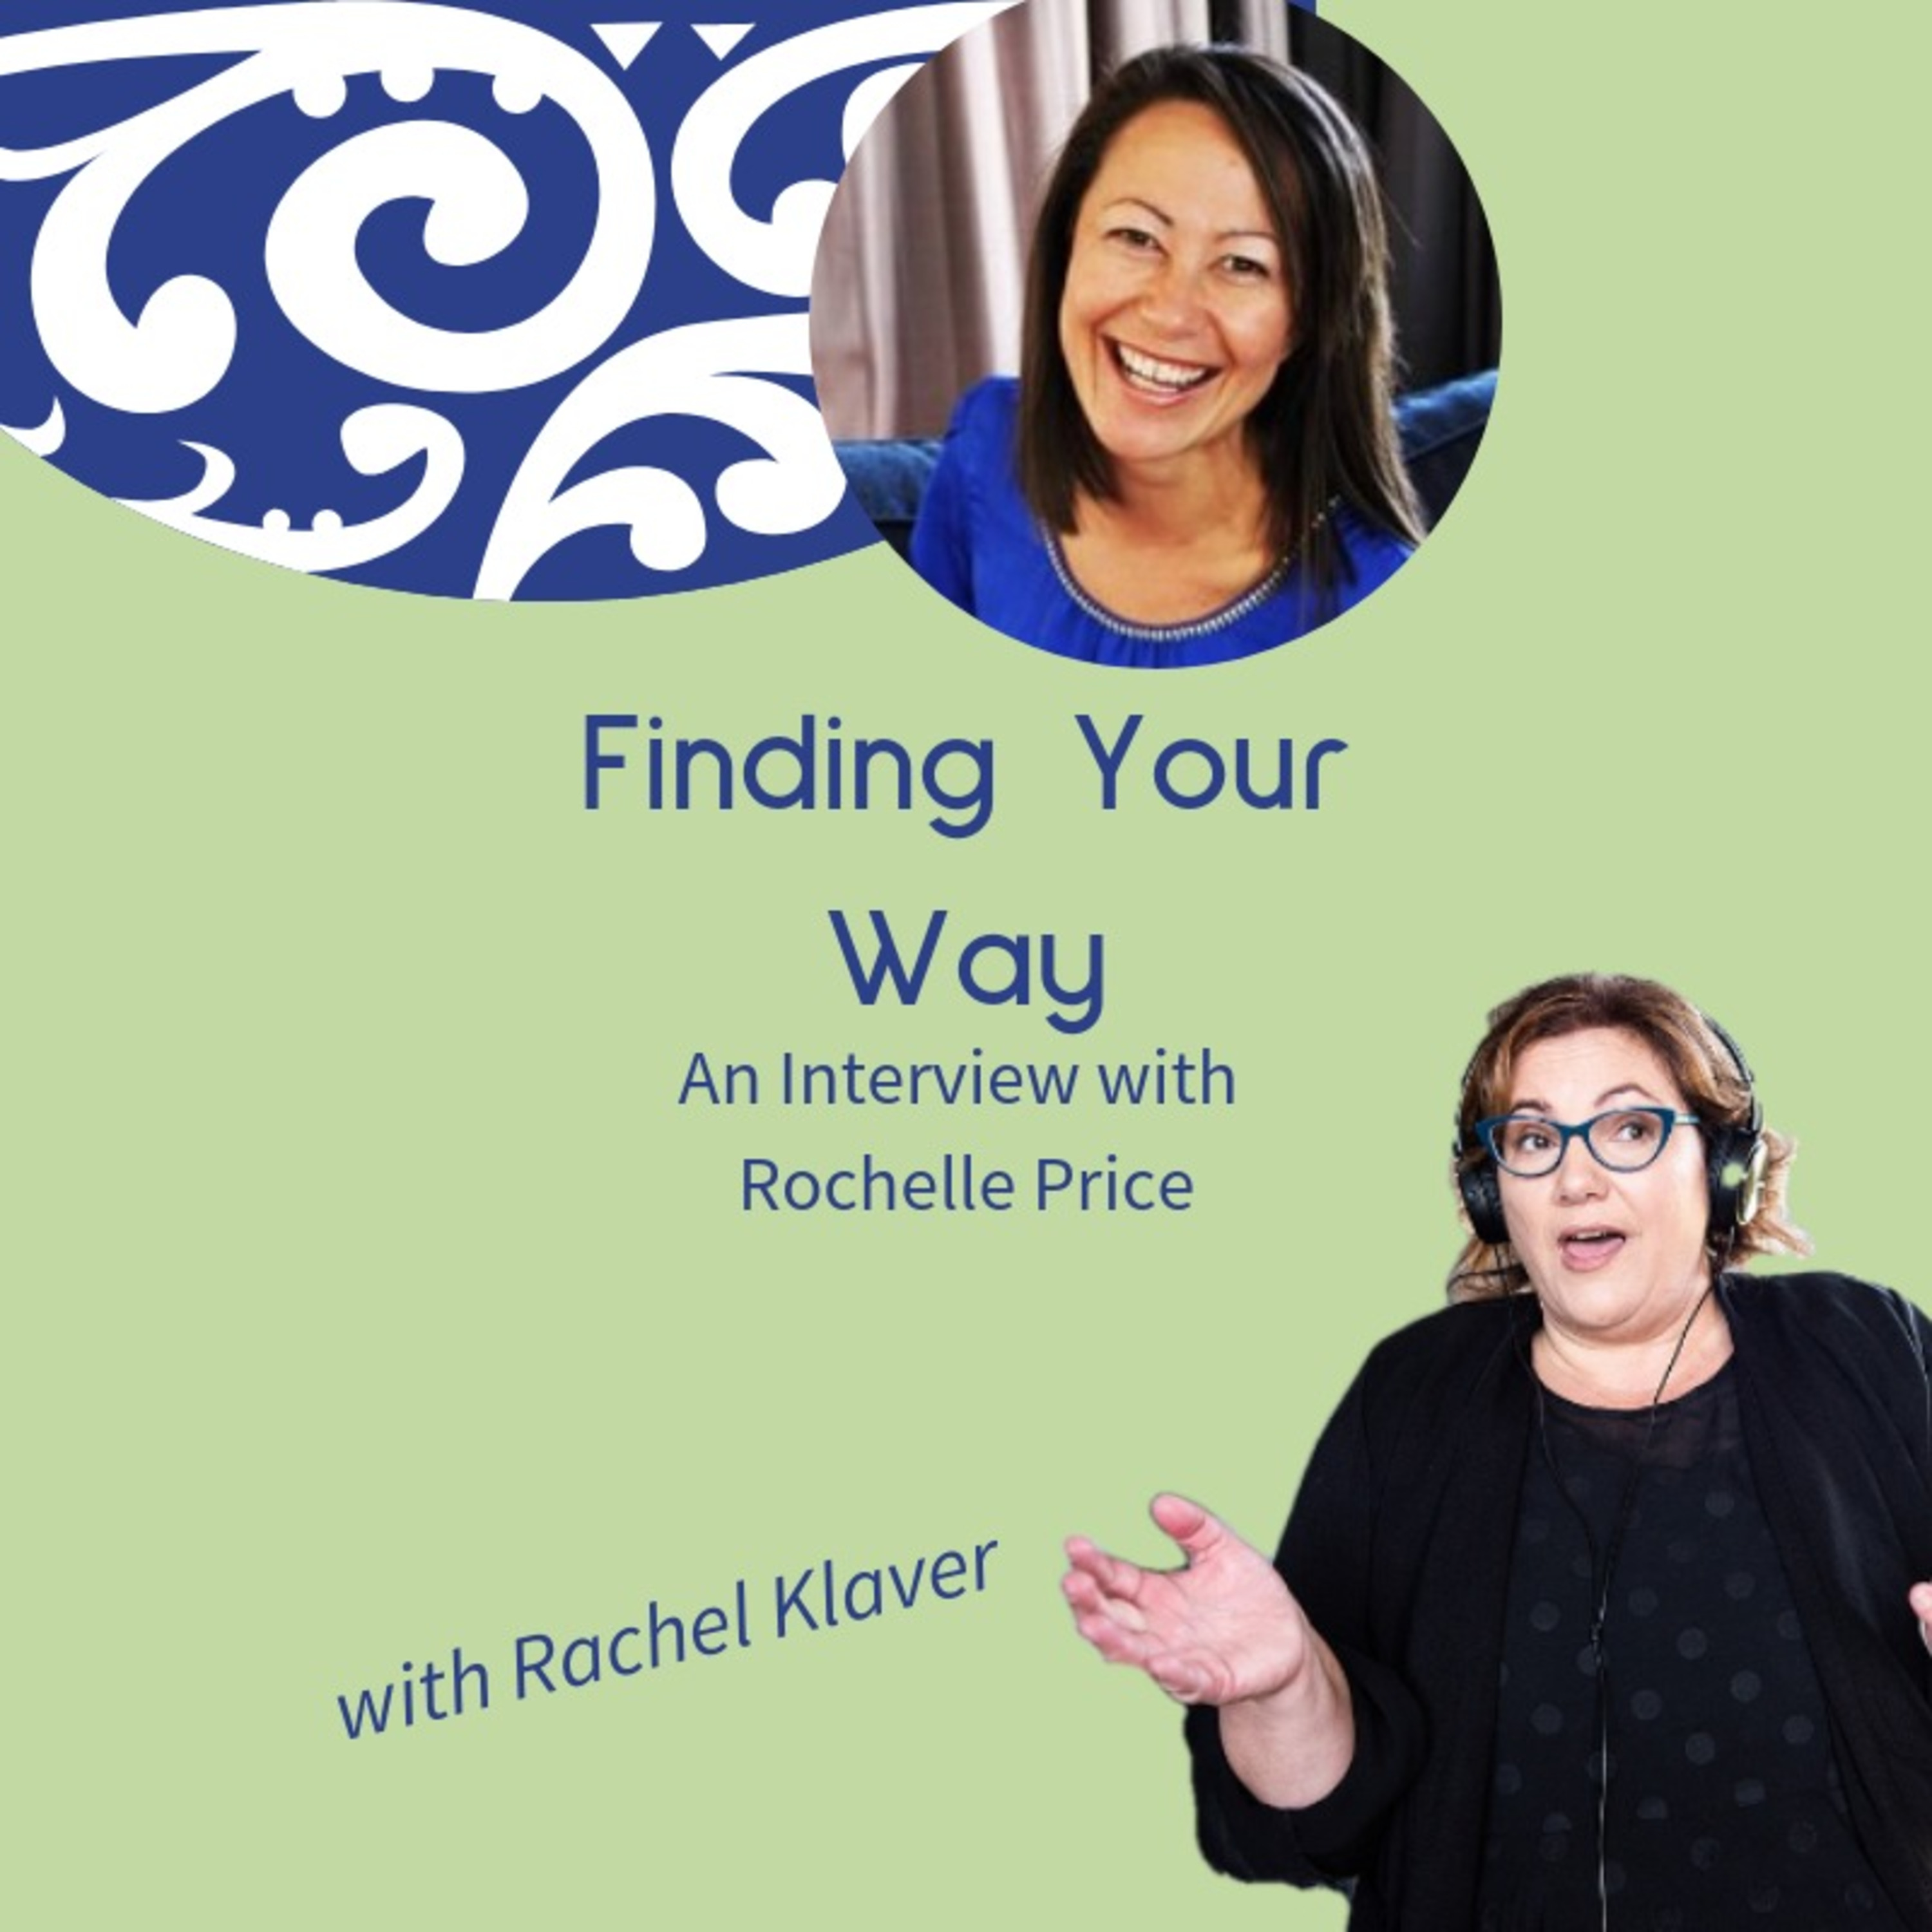 Finding Your Way with Rochelle Price